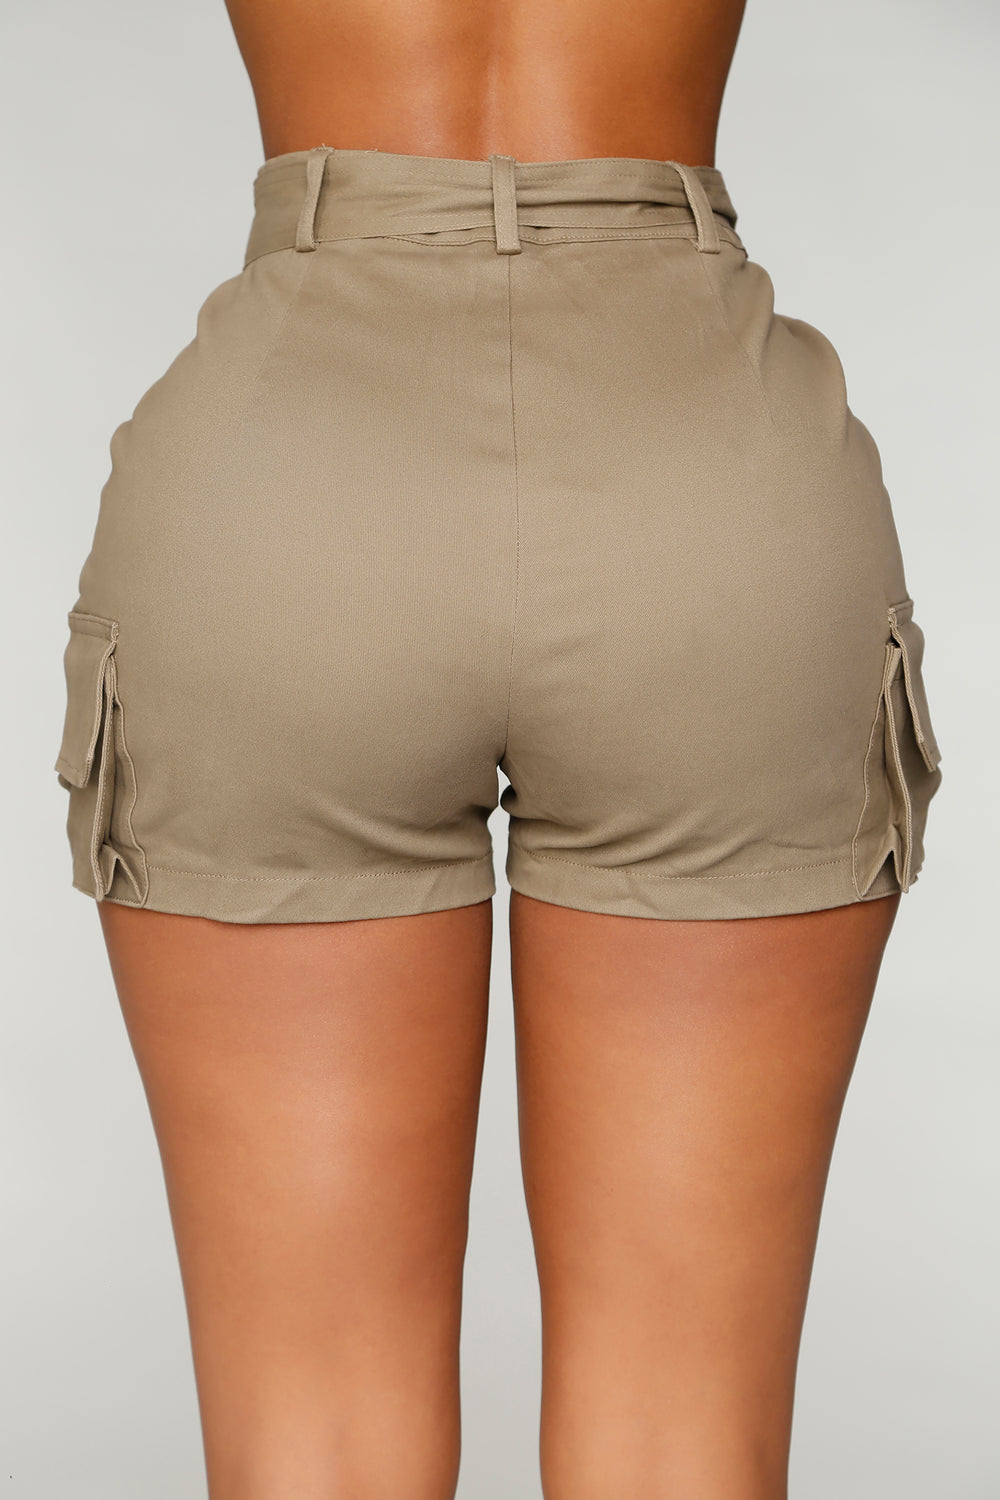 Jane In The Jungle Shorts - Olive